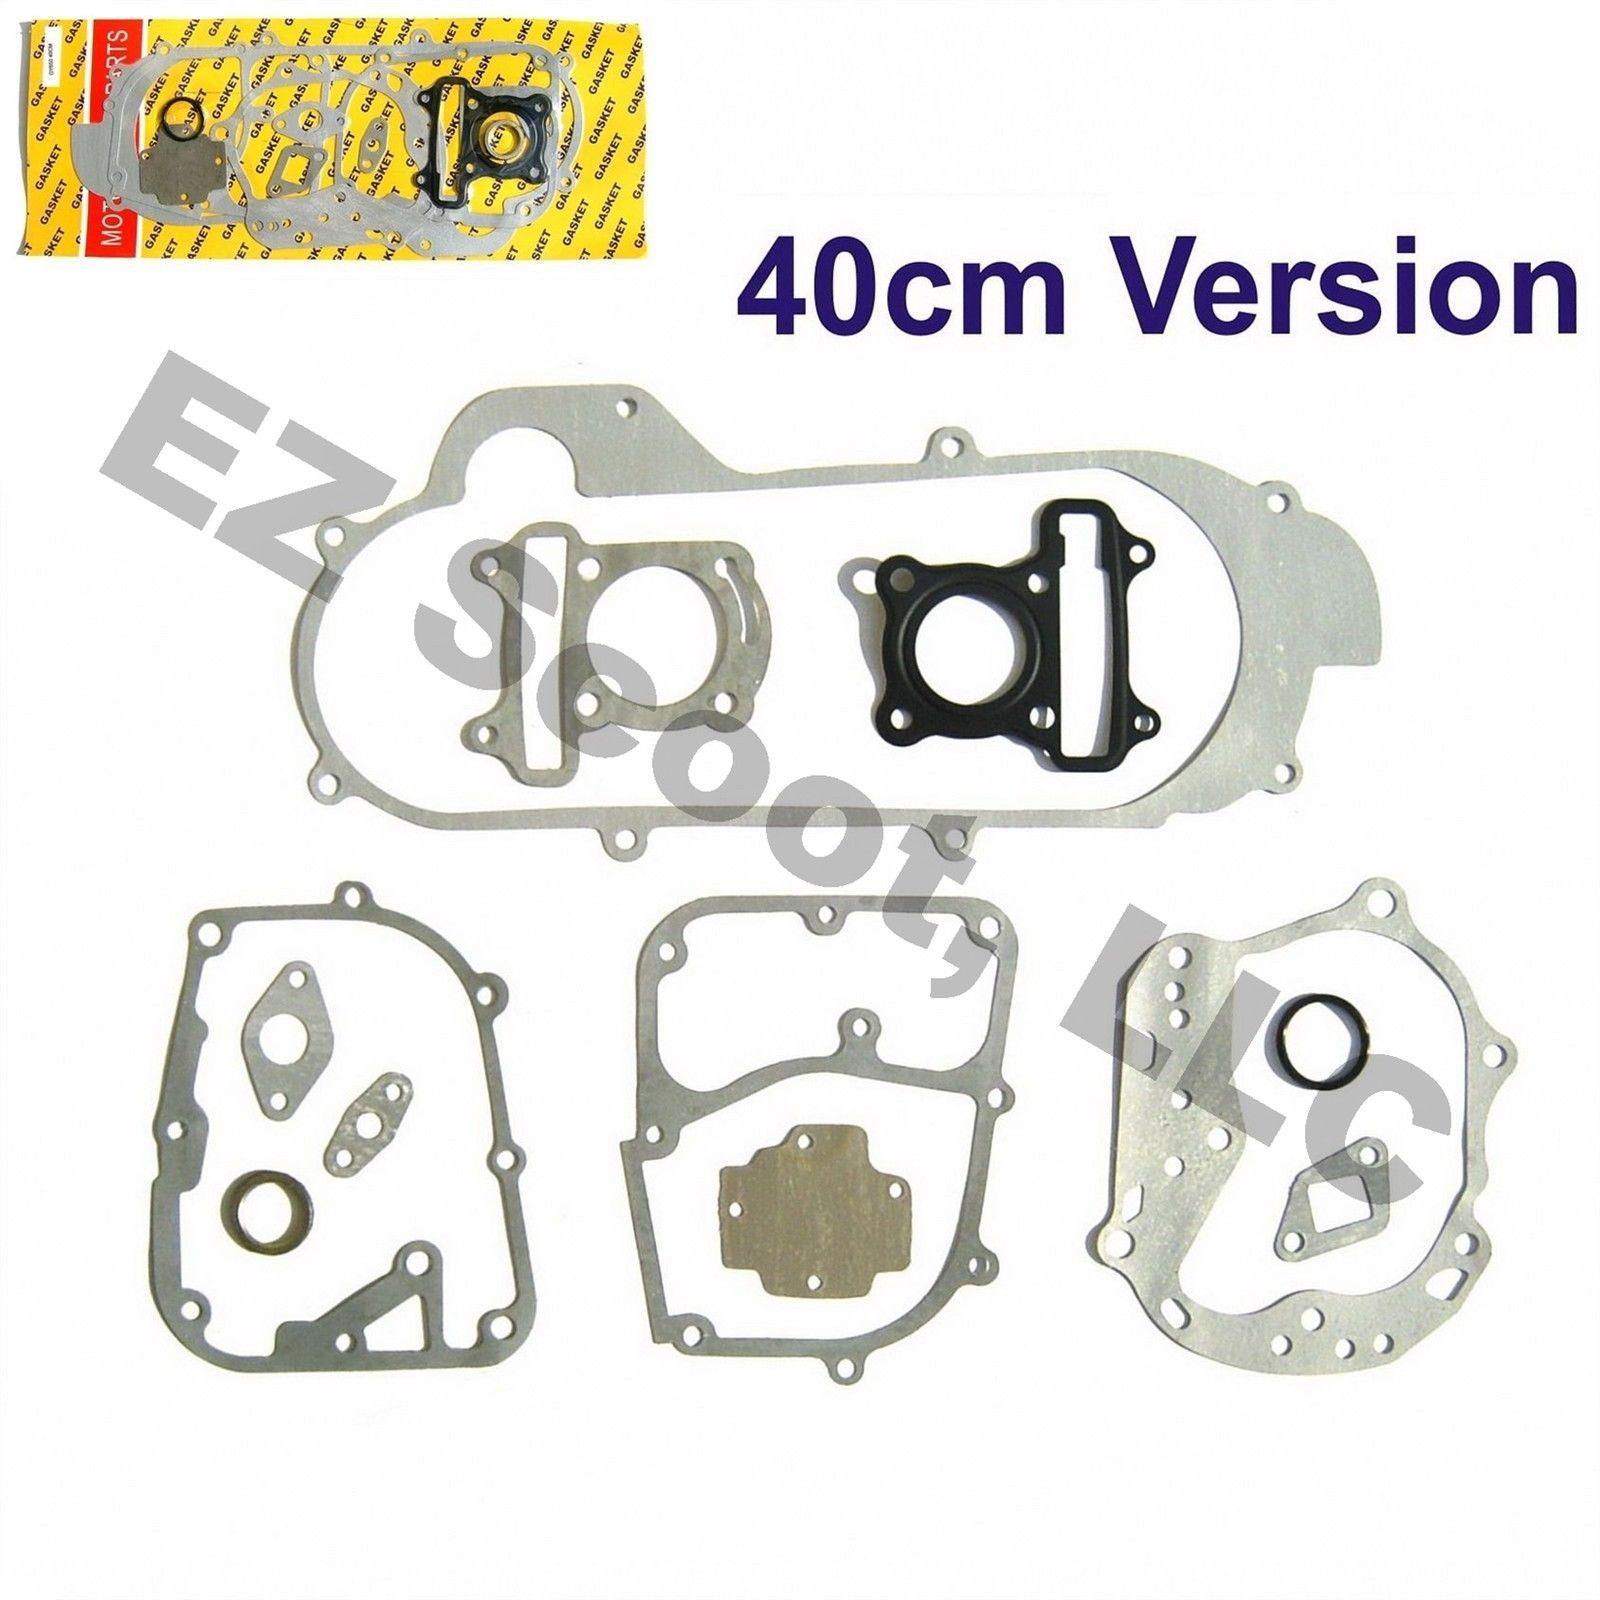 small resolution of complete engine gasket set 50cc 40cm gy6 4 stroke chinese scooter 139 qma b ebay